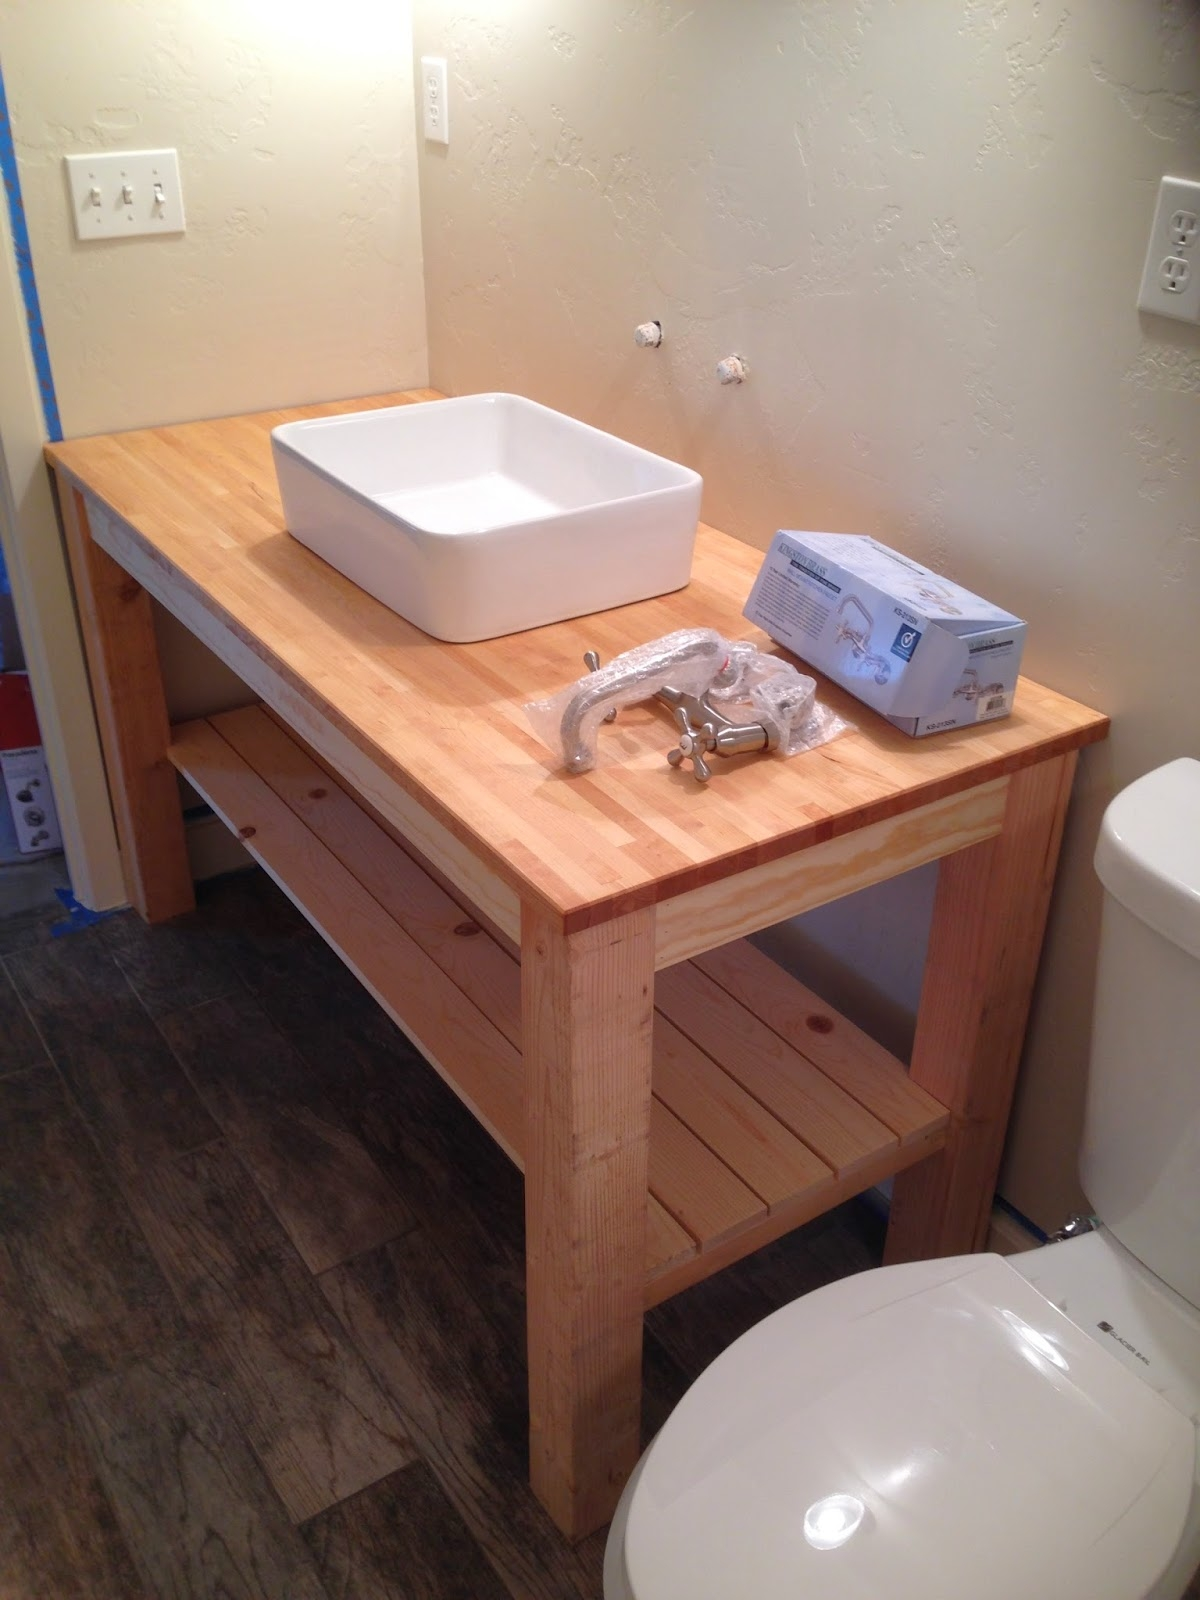 Making Your Own Bathroom Vanity